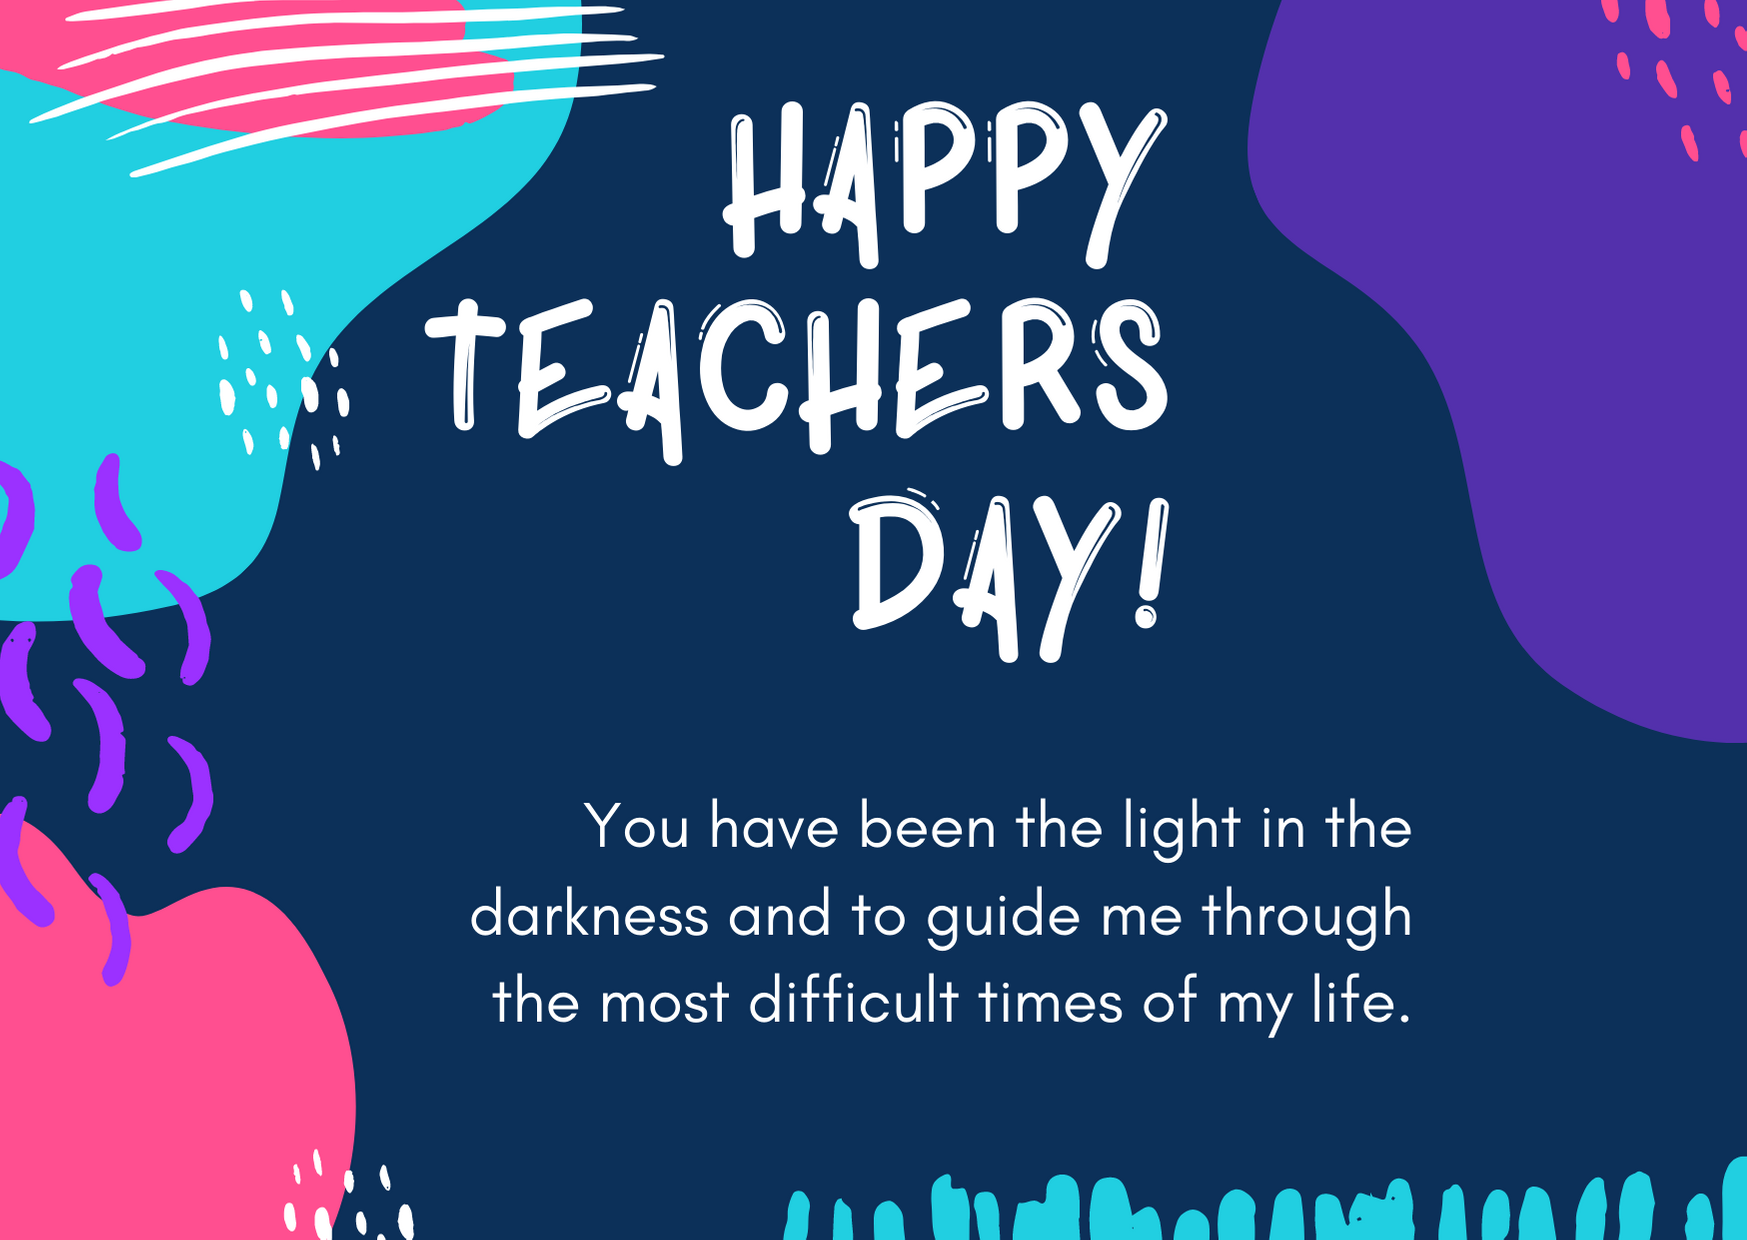 teachers day wishes photos download